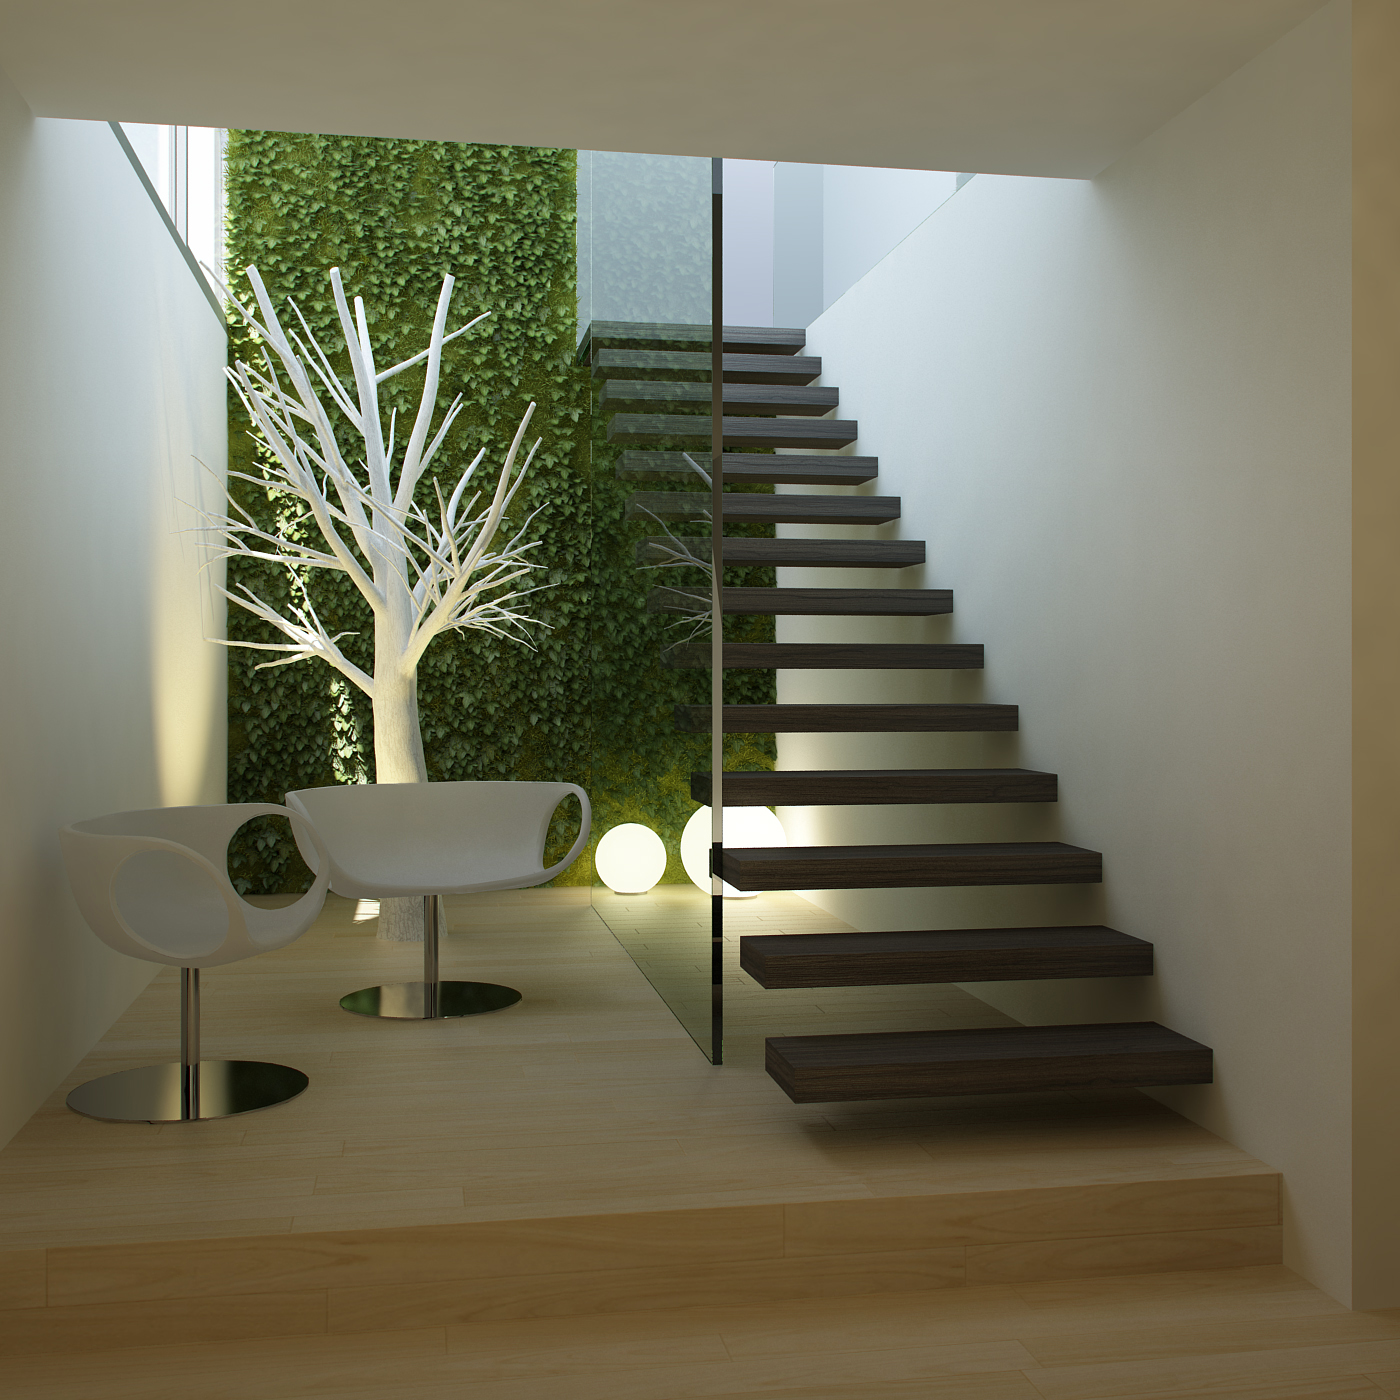 Living in designland detalle escalera for Escalera interior casa